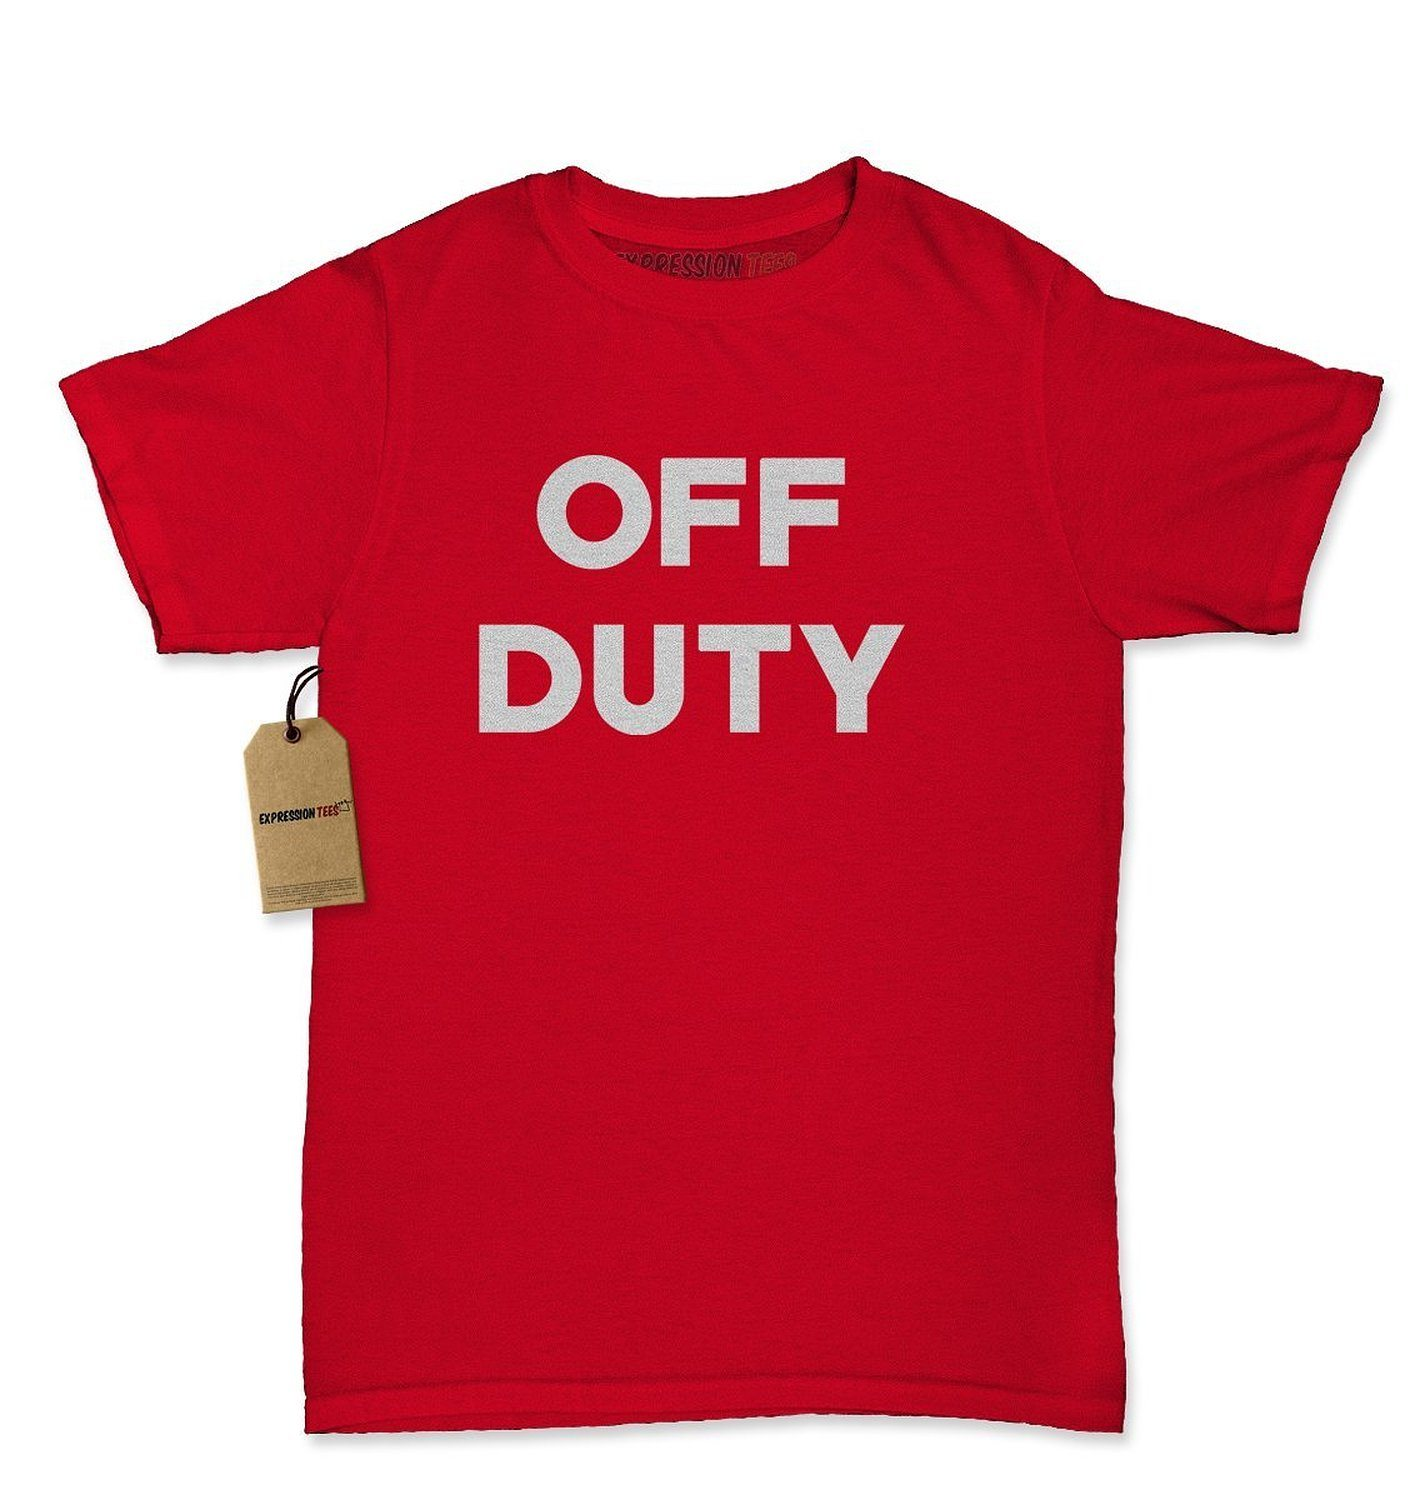 Expression Tees Off Duty Womens